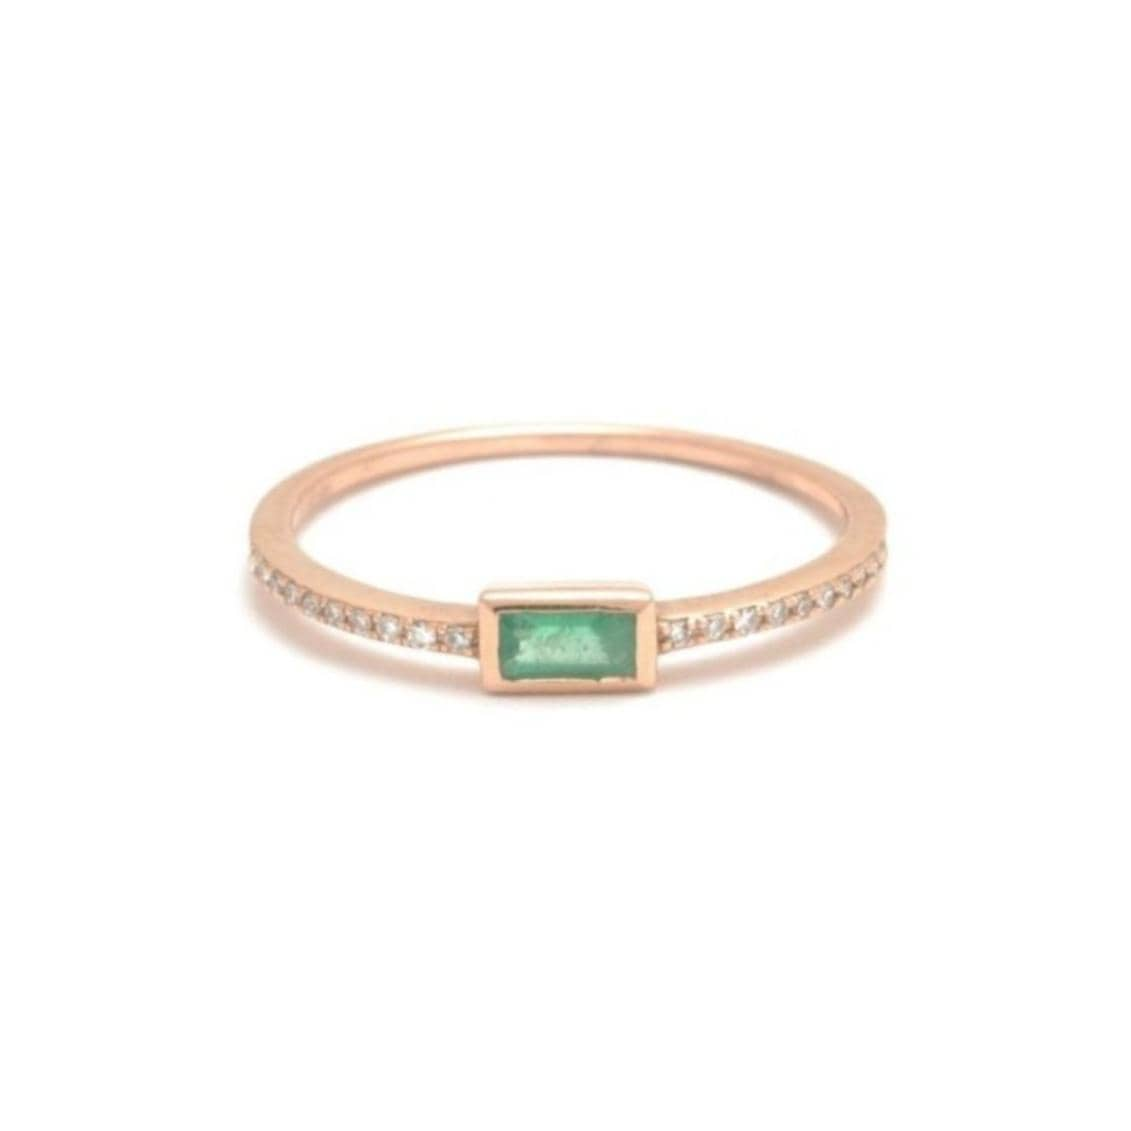 Emerald Baguette Ring with Diamonds in the Band